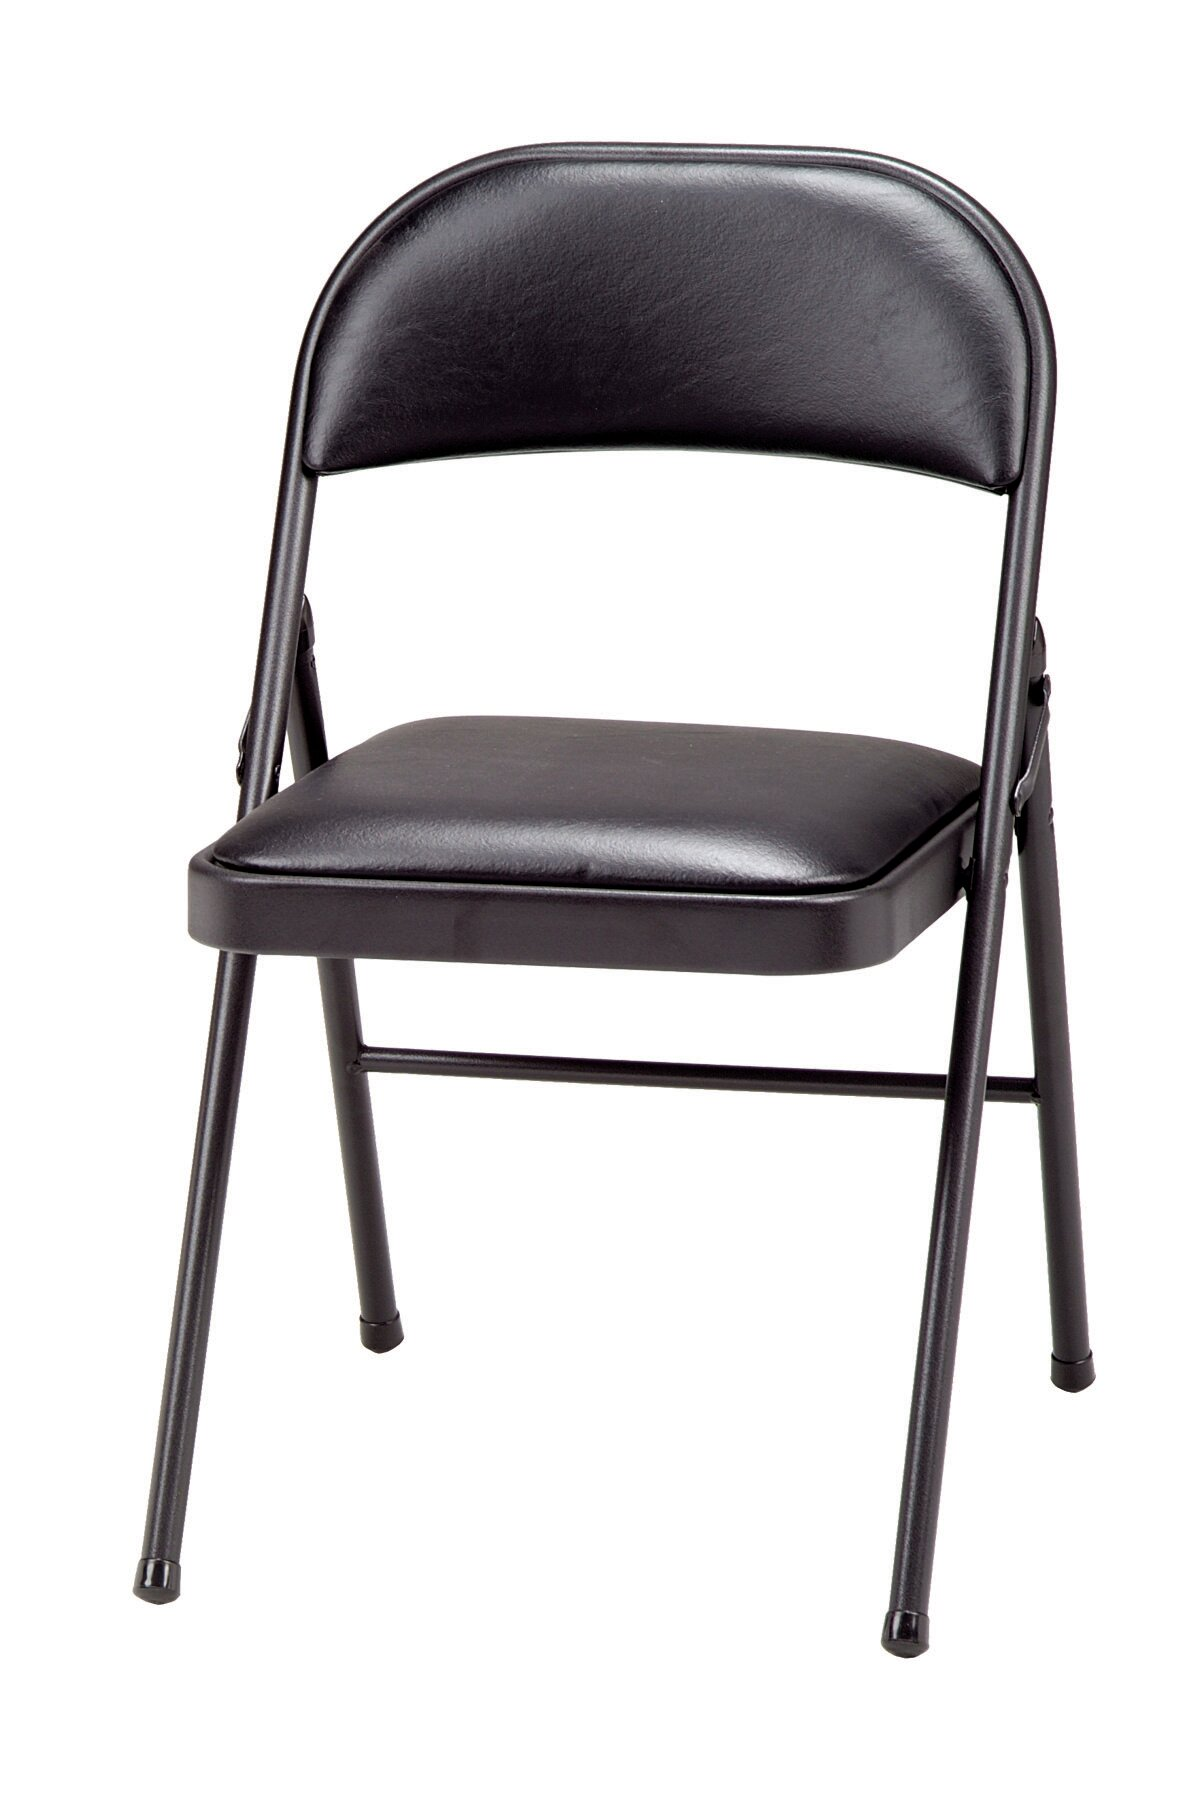 Meco Deluxe Vinyl Padded Folding Chair & Reviews